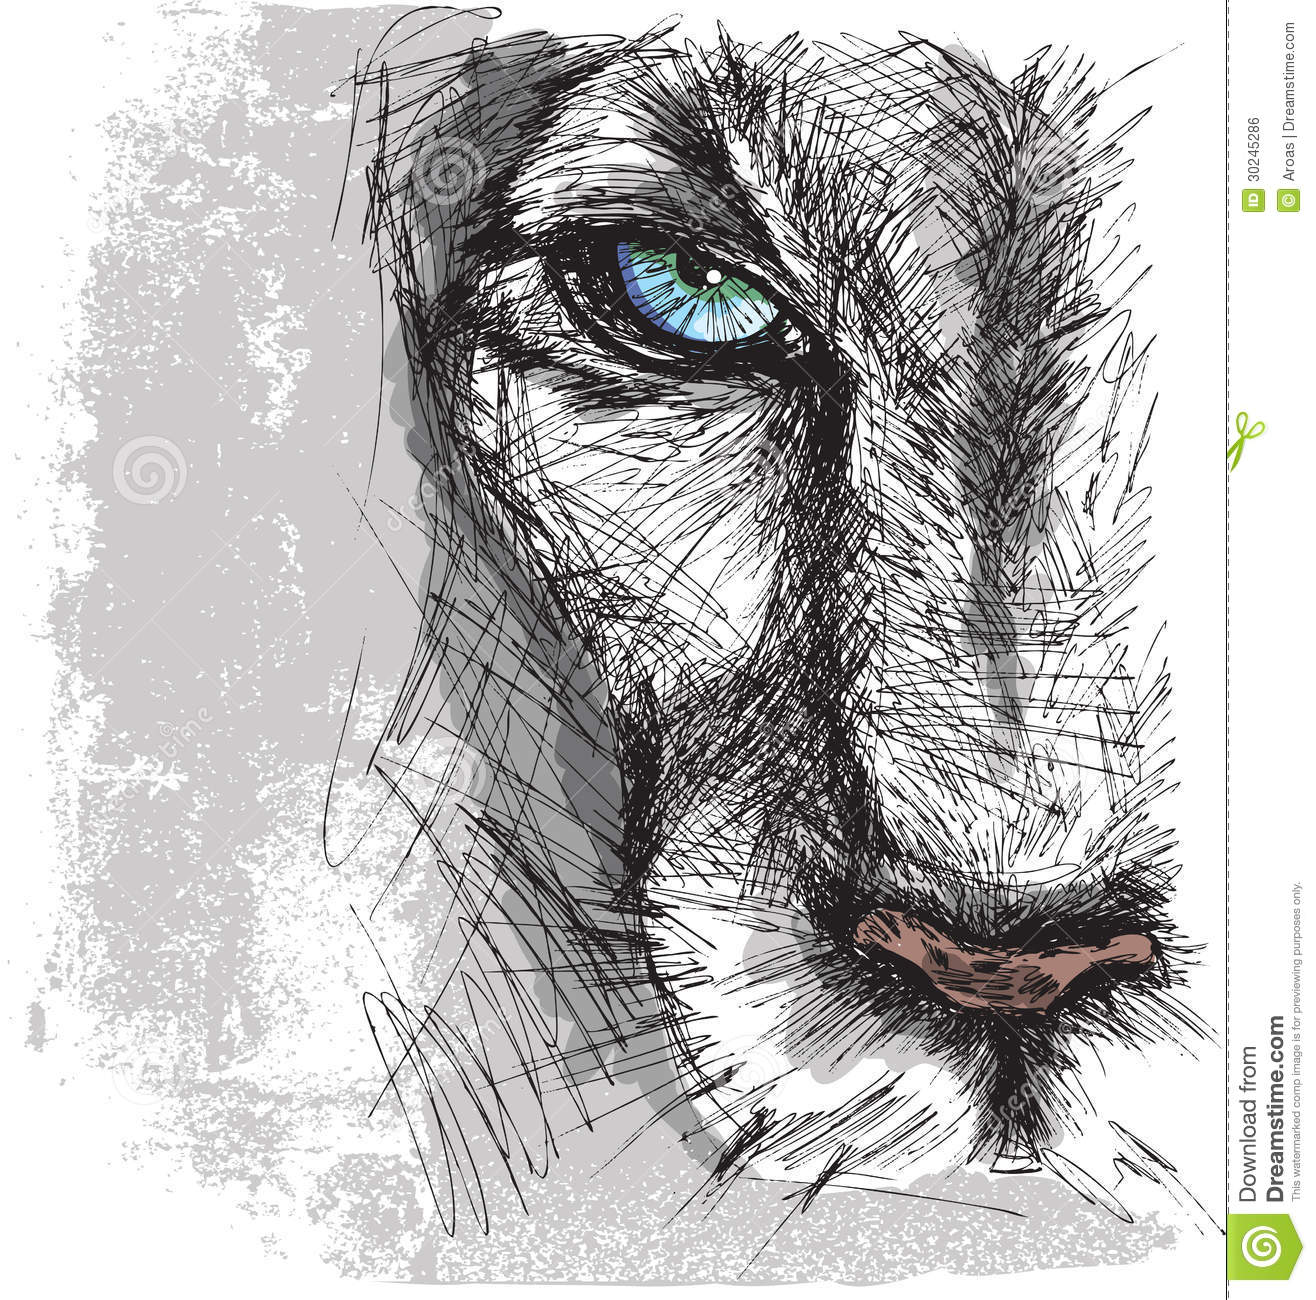 Hand Drawn Sketch Of A Lion Royalty Free Stock Image - Image: 30245286